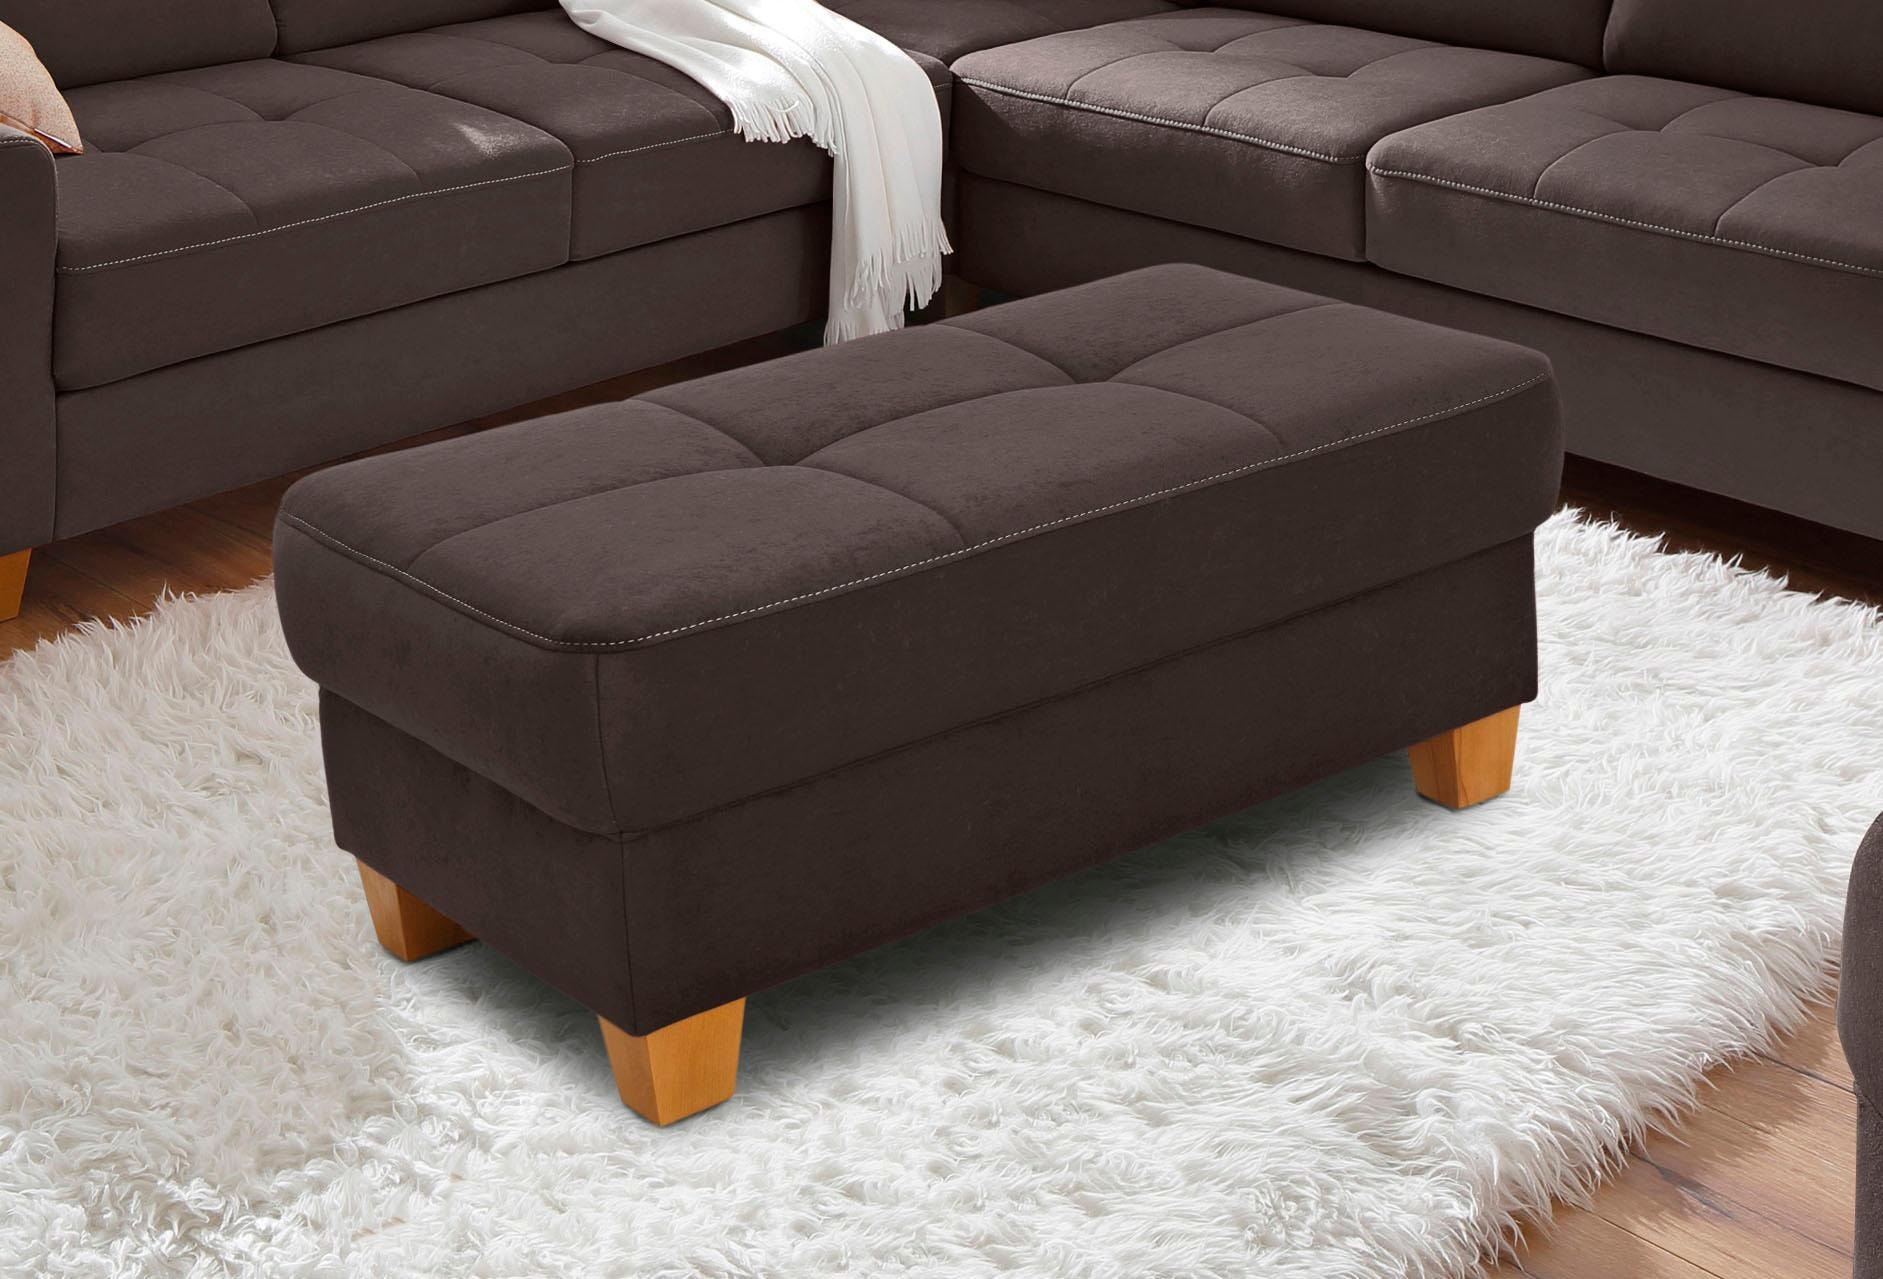 Home affaire Hocker »Pucci« | Wohnzimmer > Hocker & Poufs > Polsterhocker | home affaire